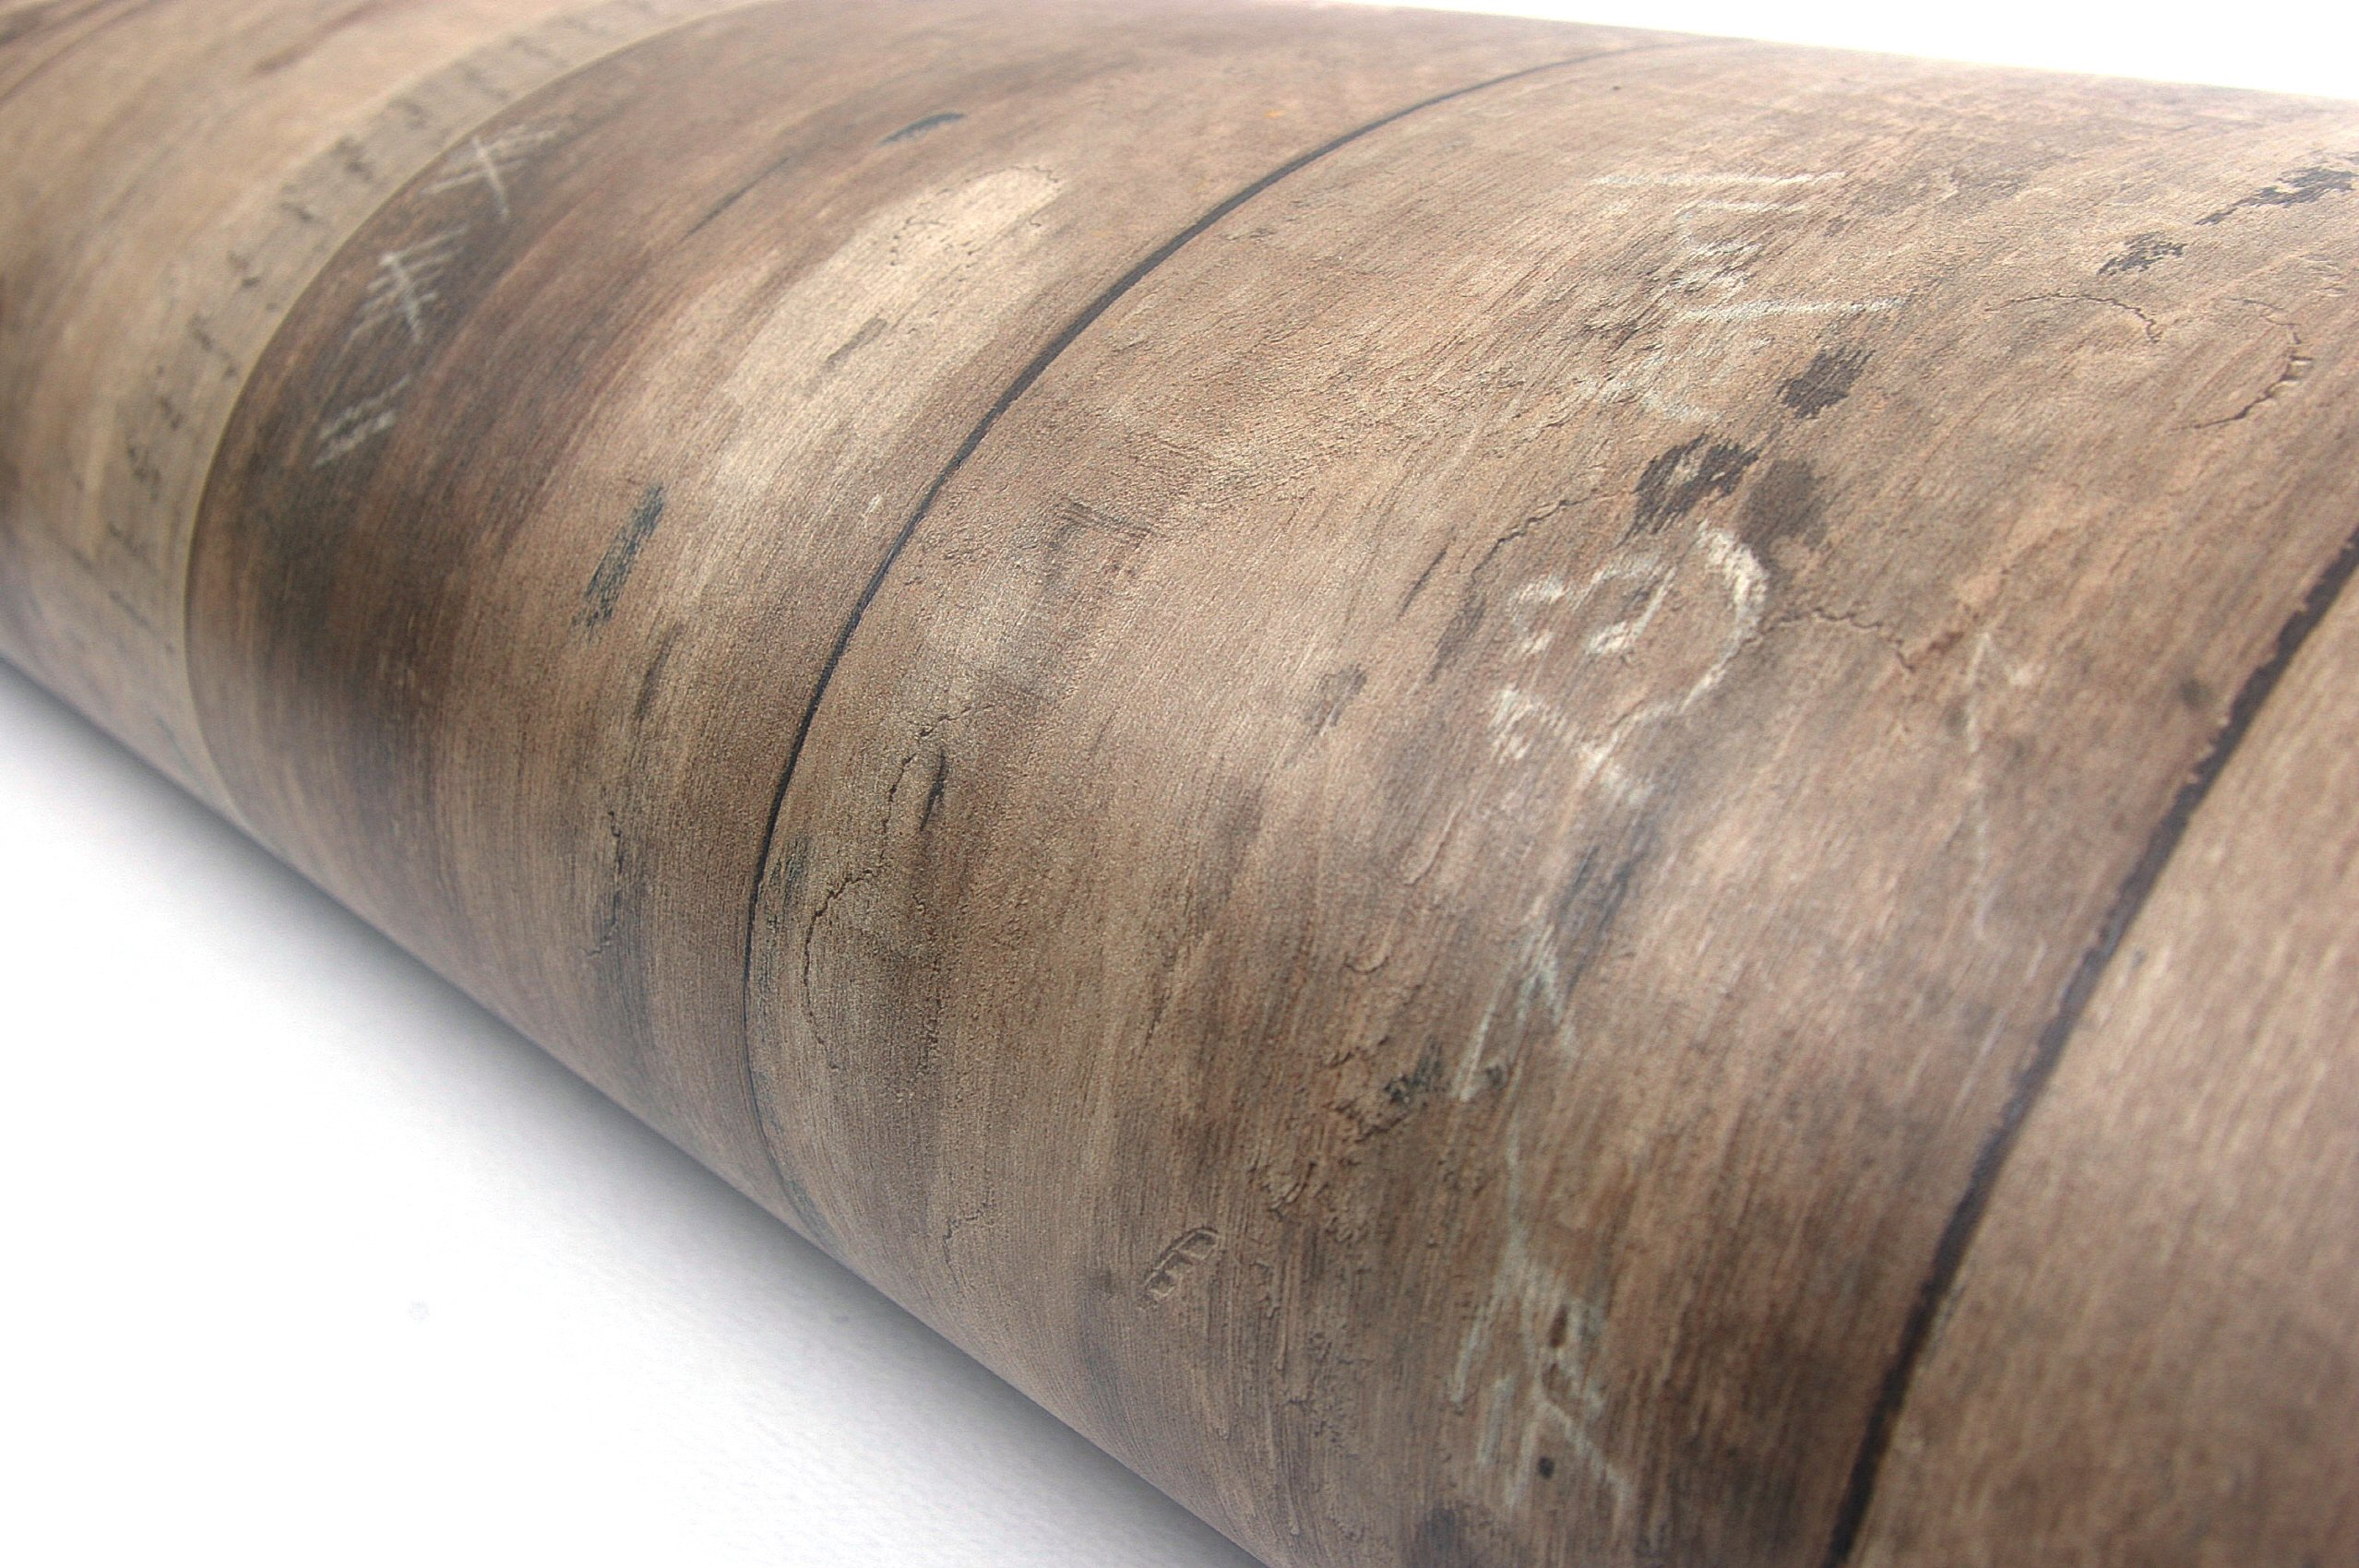 Very Berry Sticker Wood Panel Contact Paper Film Vinyl Self Adhesive Peel-Stick Removable (Brown VL7707)